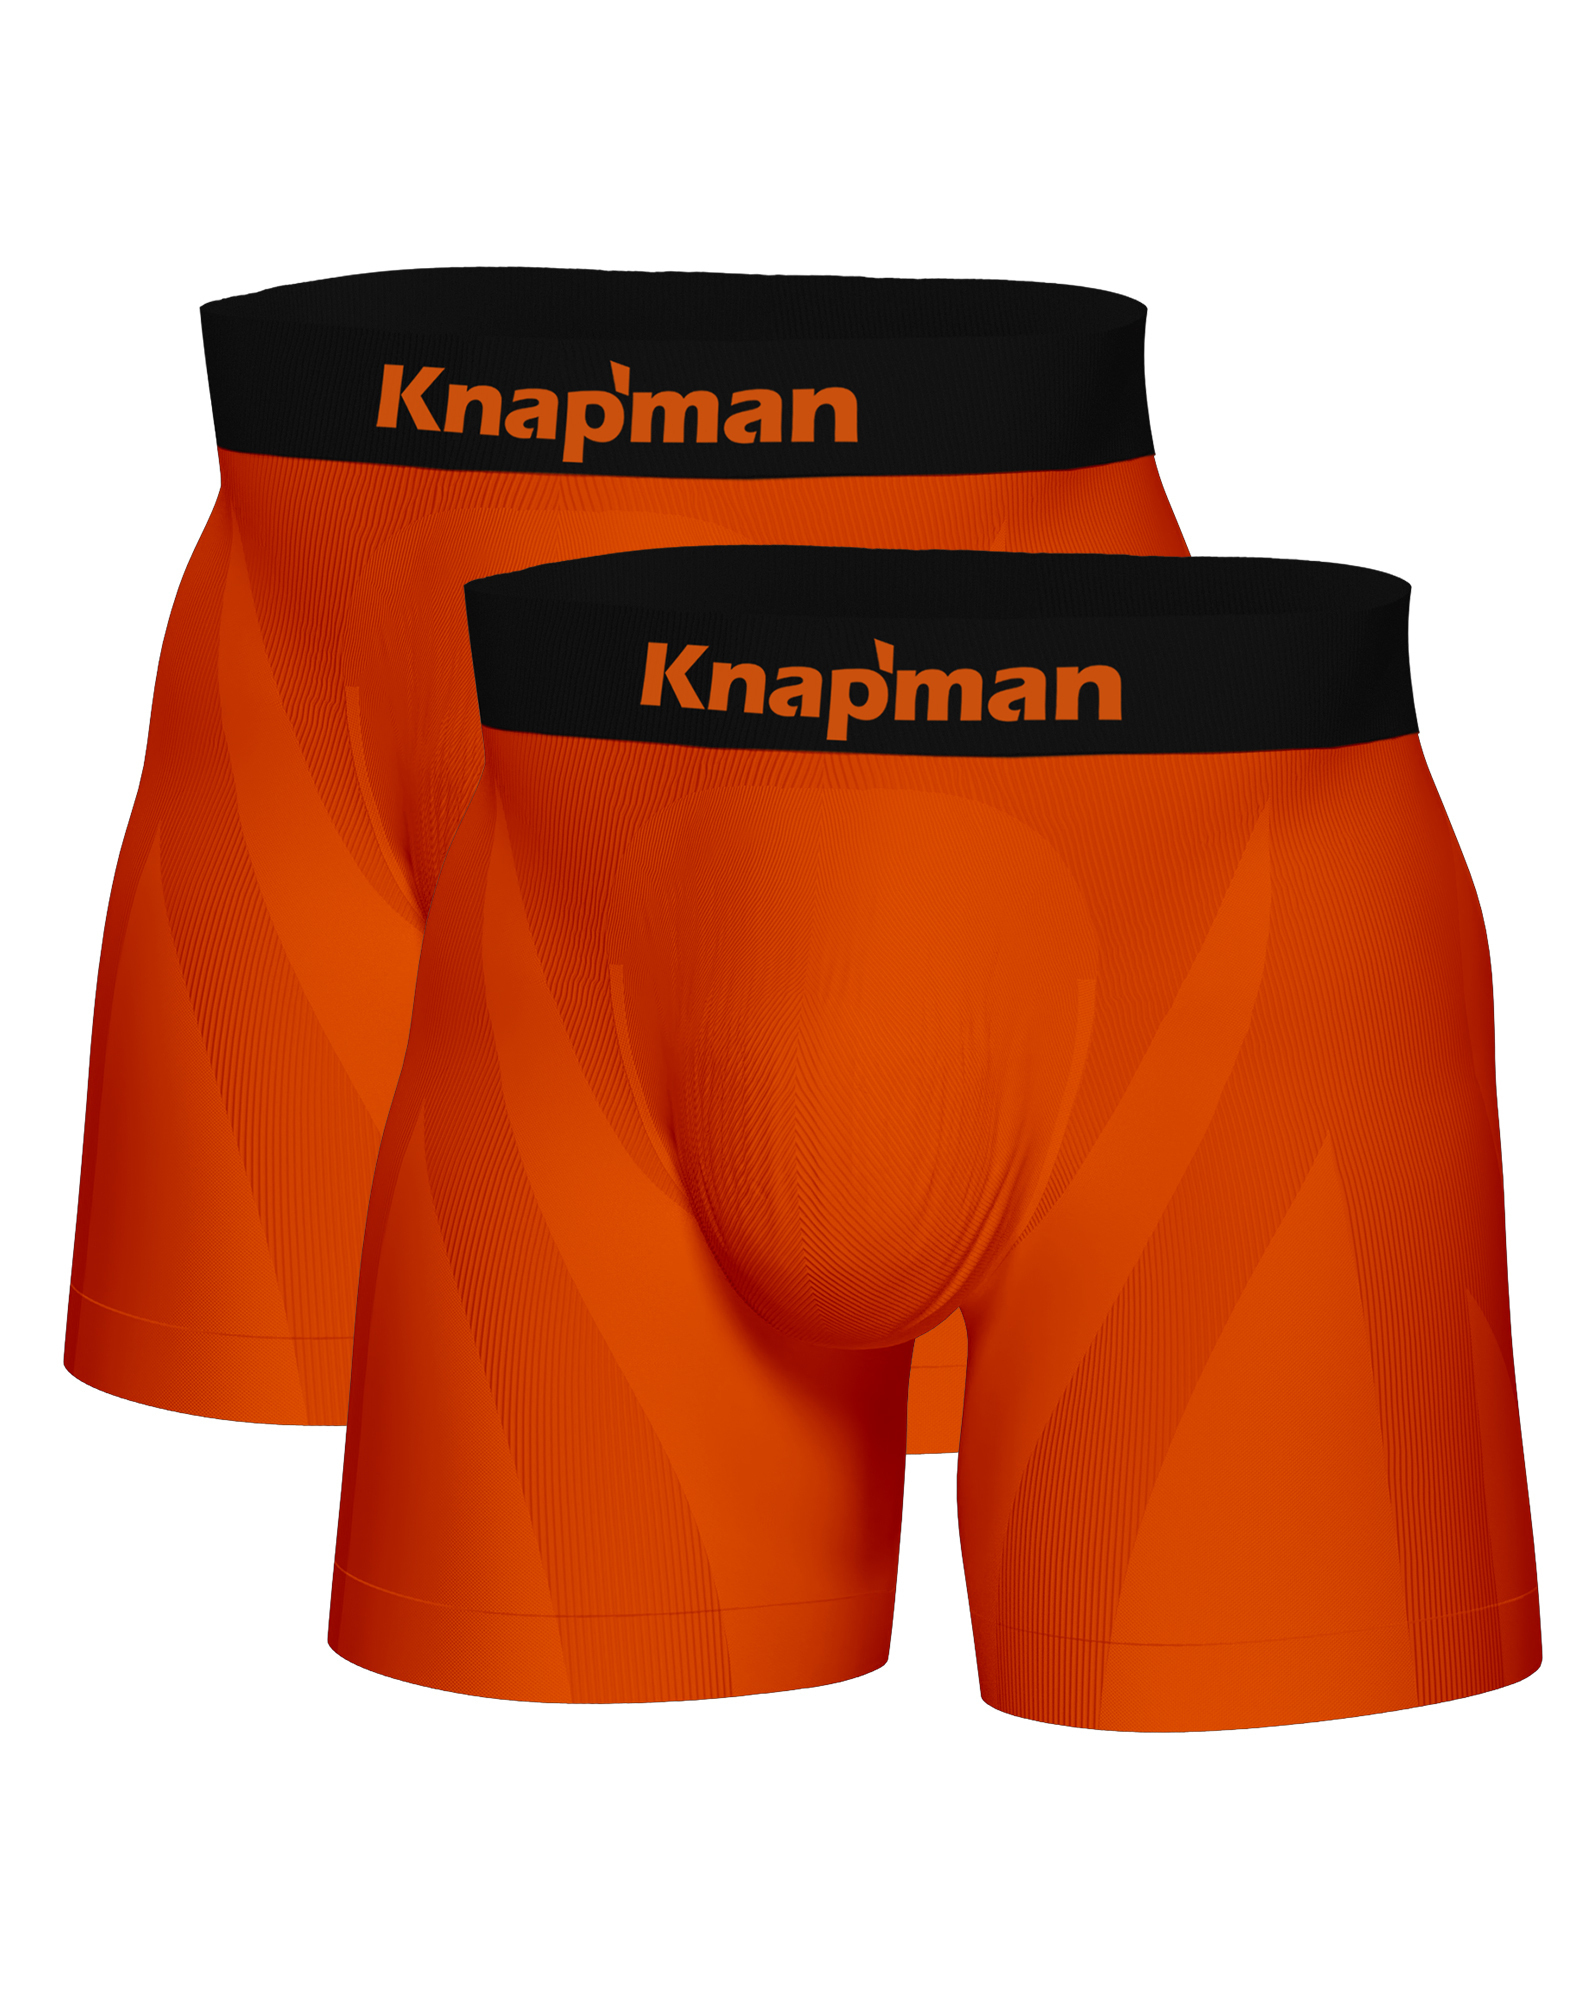 Knapman Ultimate Comfort Boxershort 3.0 Orange | Twopack